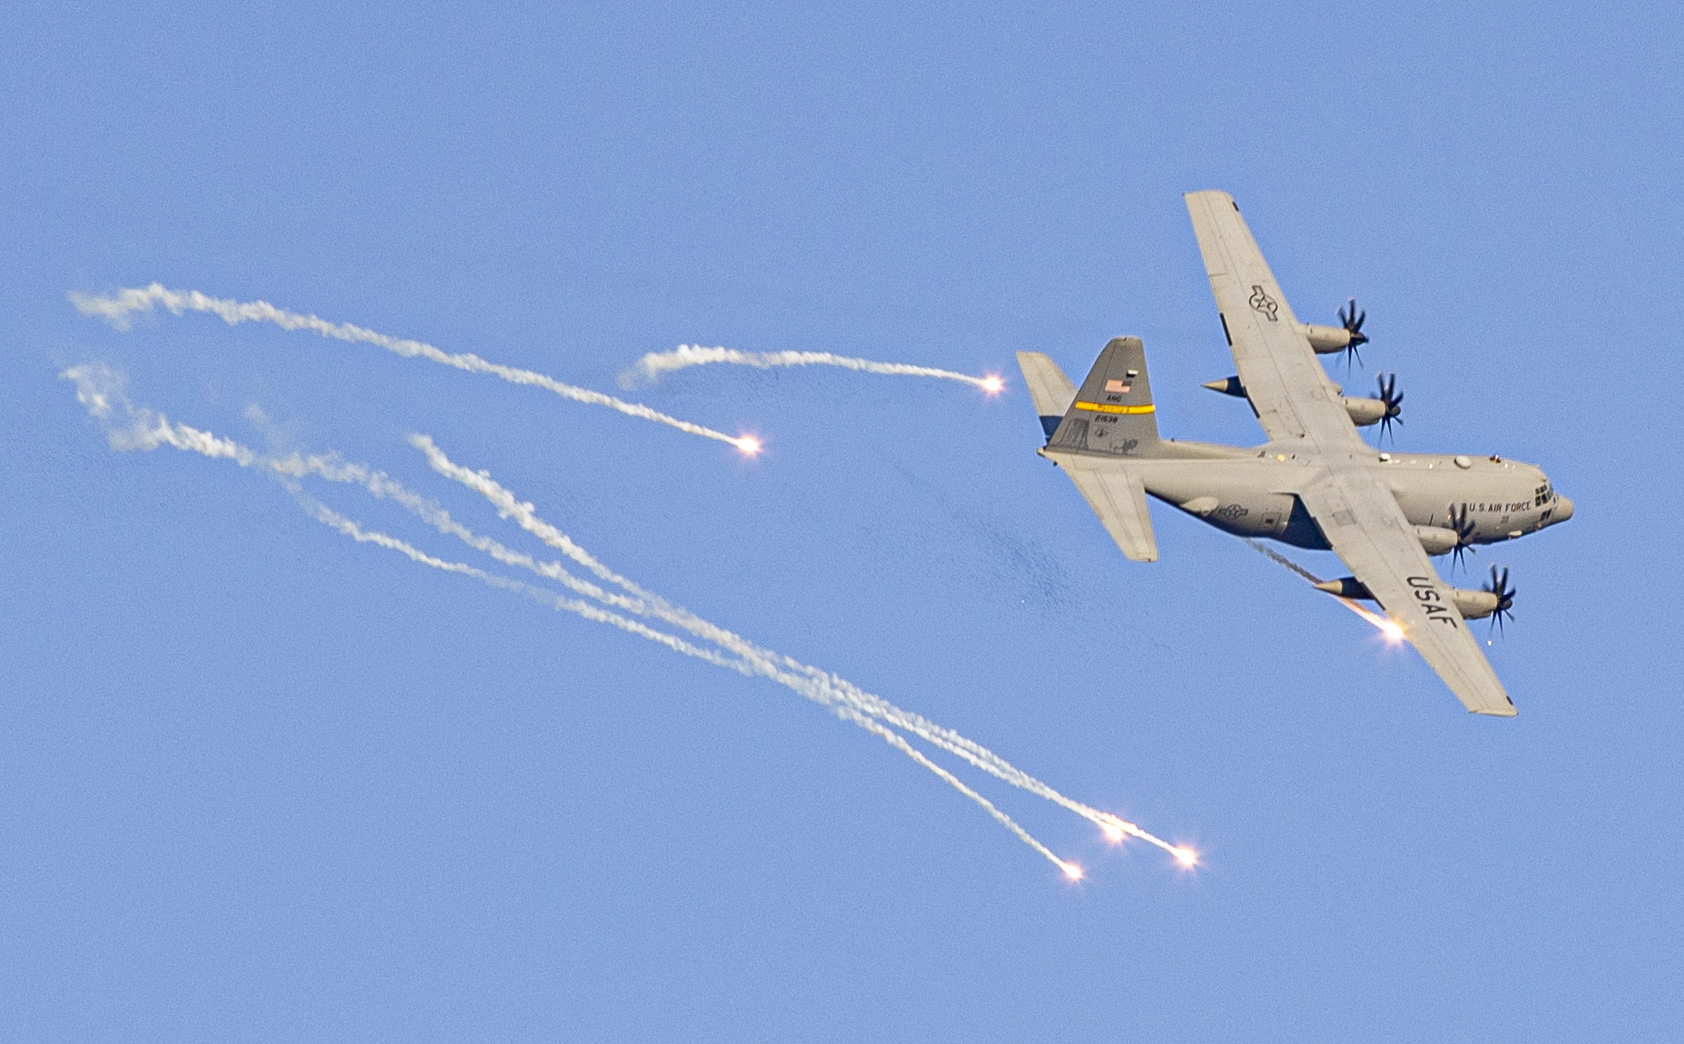 An Air Force C-130 Hercules fires flares during exercise Southern Strike at Camp Shelby Joint Forces Training Center, Miss., April 25, 2021. (Sgt. Jovi Prevot/Army)